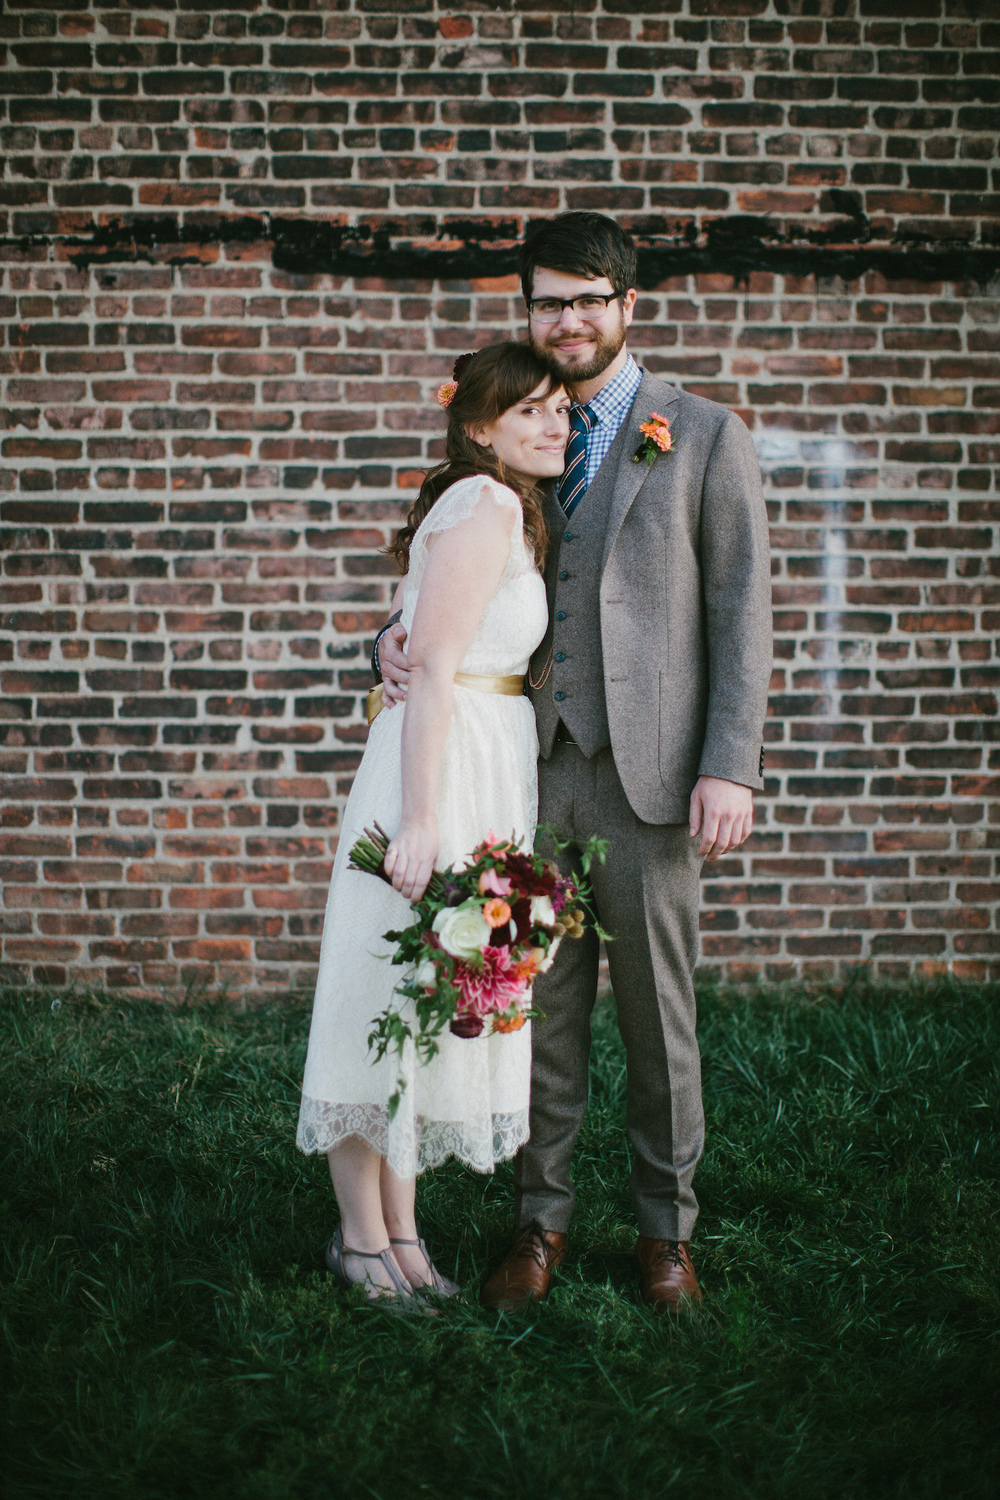 Full Aperture Floral & Corey Torpie Photography  - Brooklyn Wedding - 70.jpeg